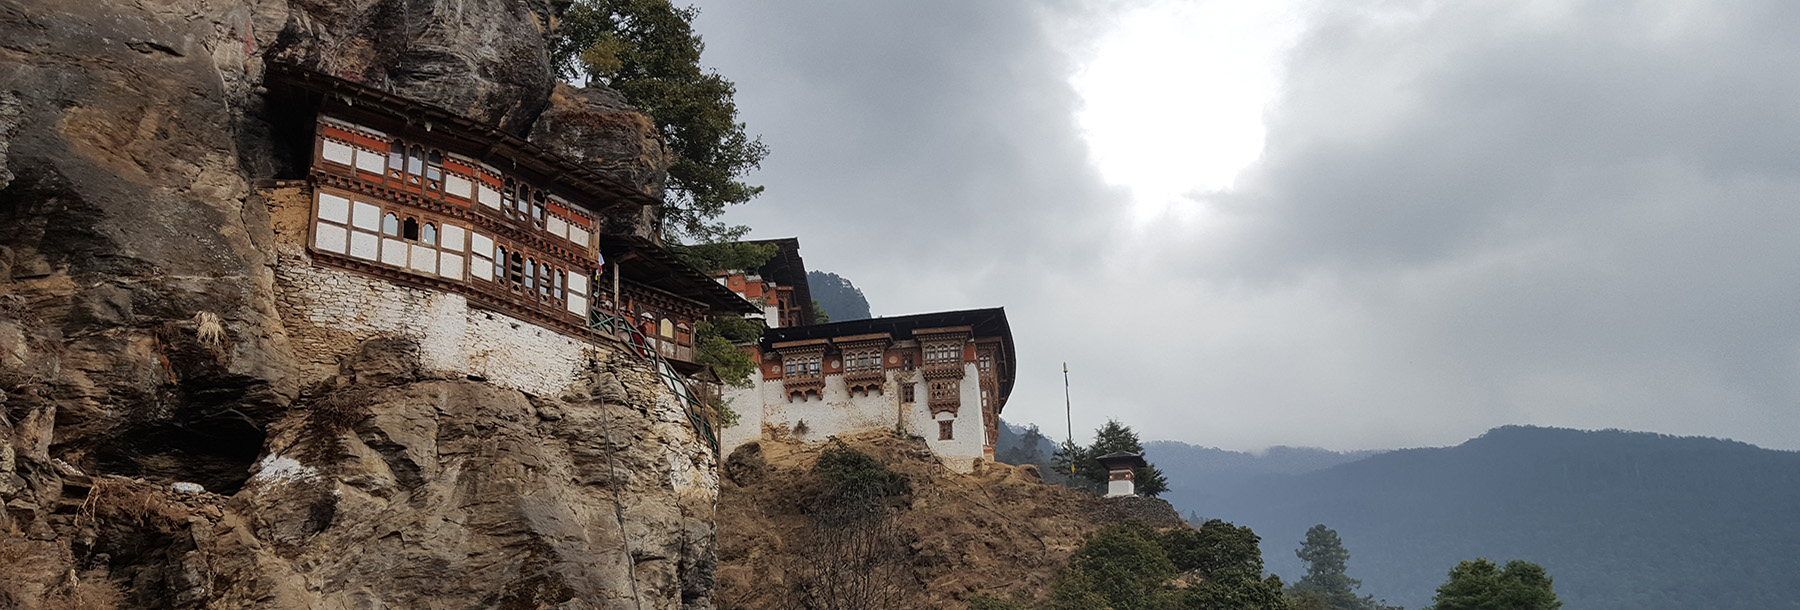 Tango Monastery in capital Thimphu - Bhutan Acorn Tours & Travel